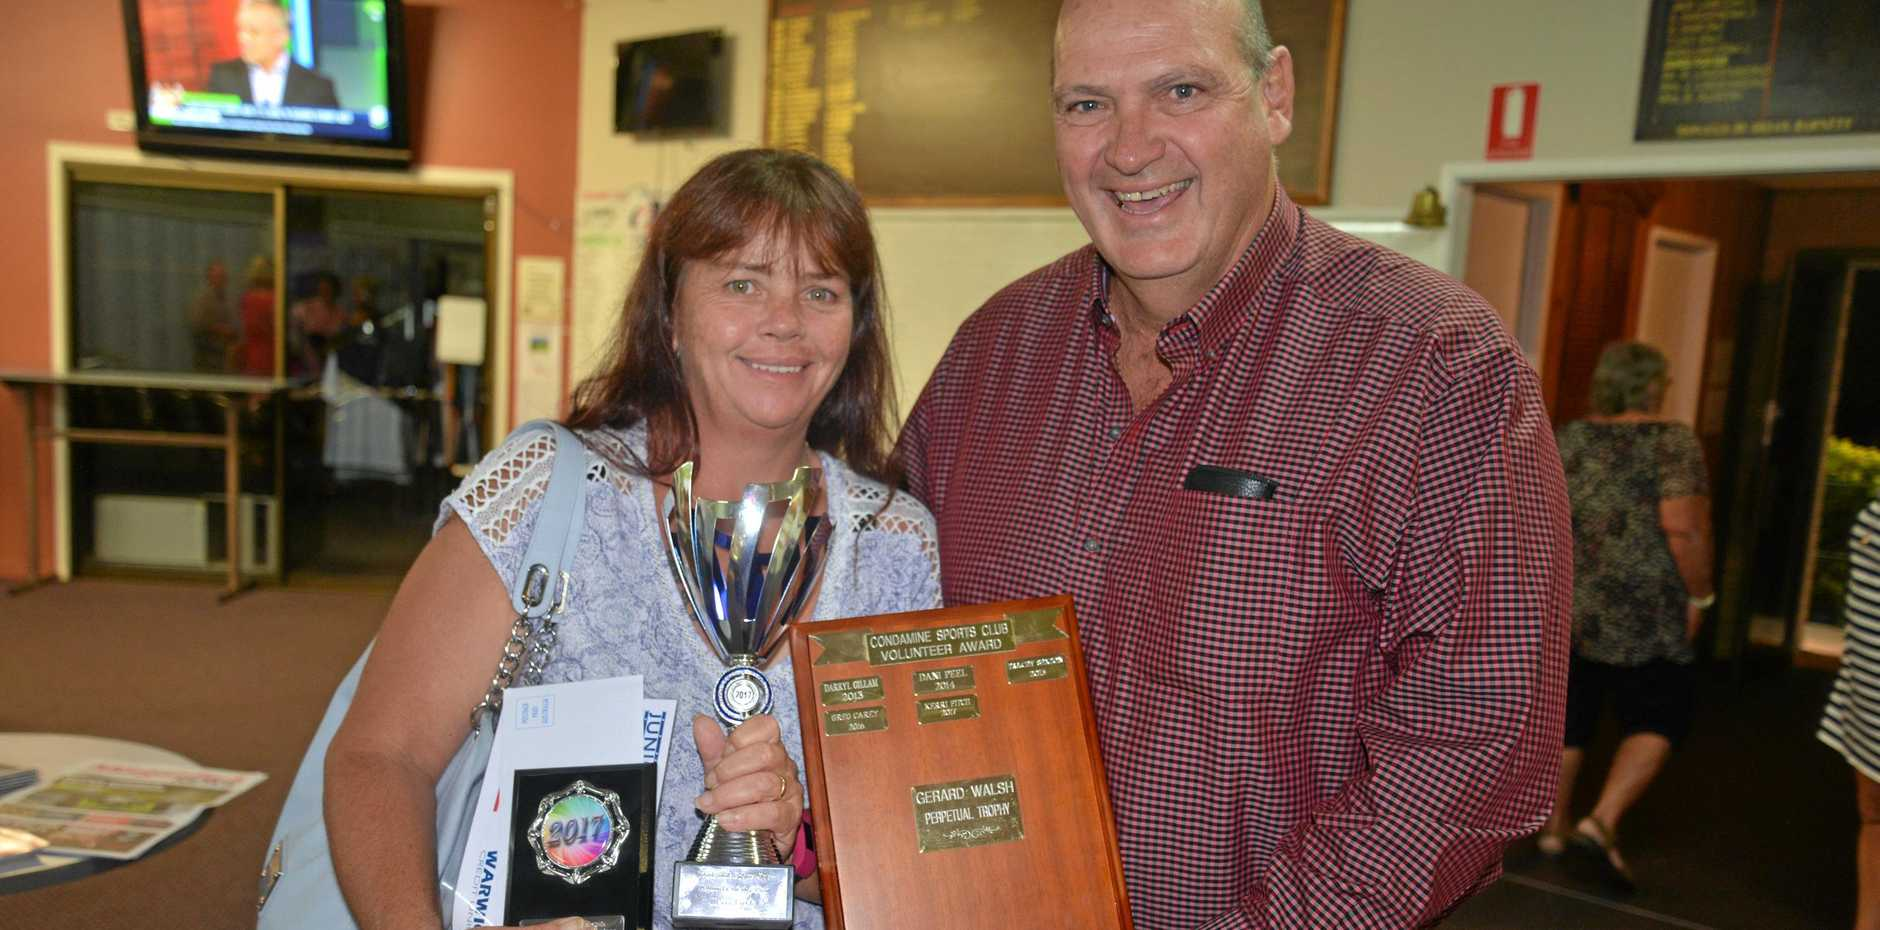 LAST YEAR'S WINNER: Condamine Sports Club Volunteer of the Year Kerri Fitch for 2017 with sports club president Ross Bell at the sports awards.